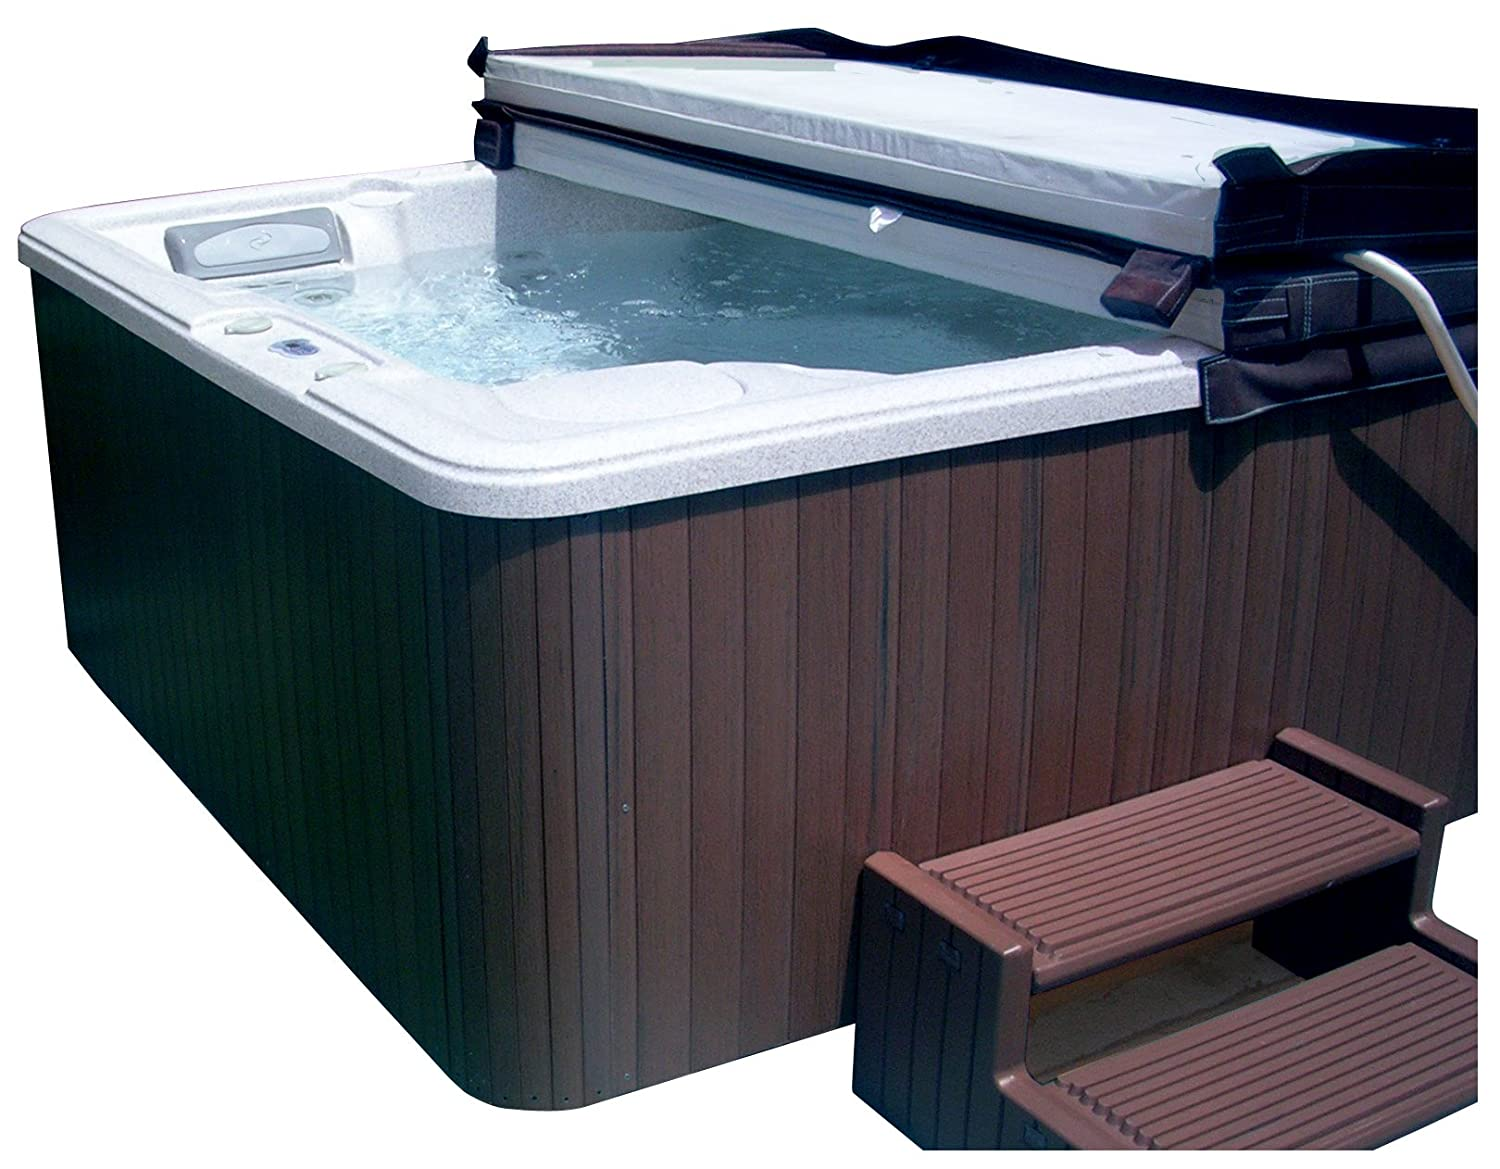 The Best Outdoor Hot Tubs For Your Garden: Reviews & Buying Guide 10